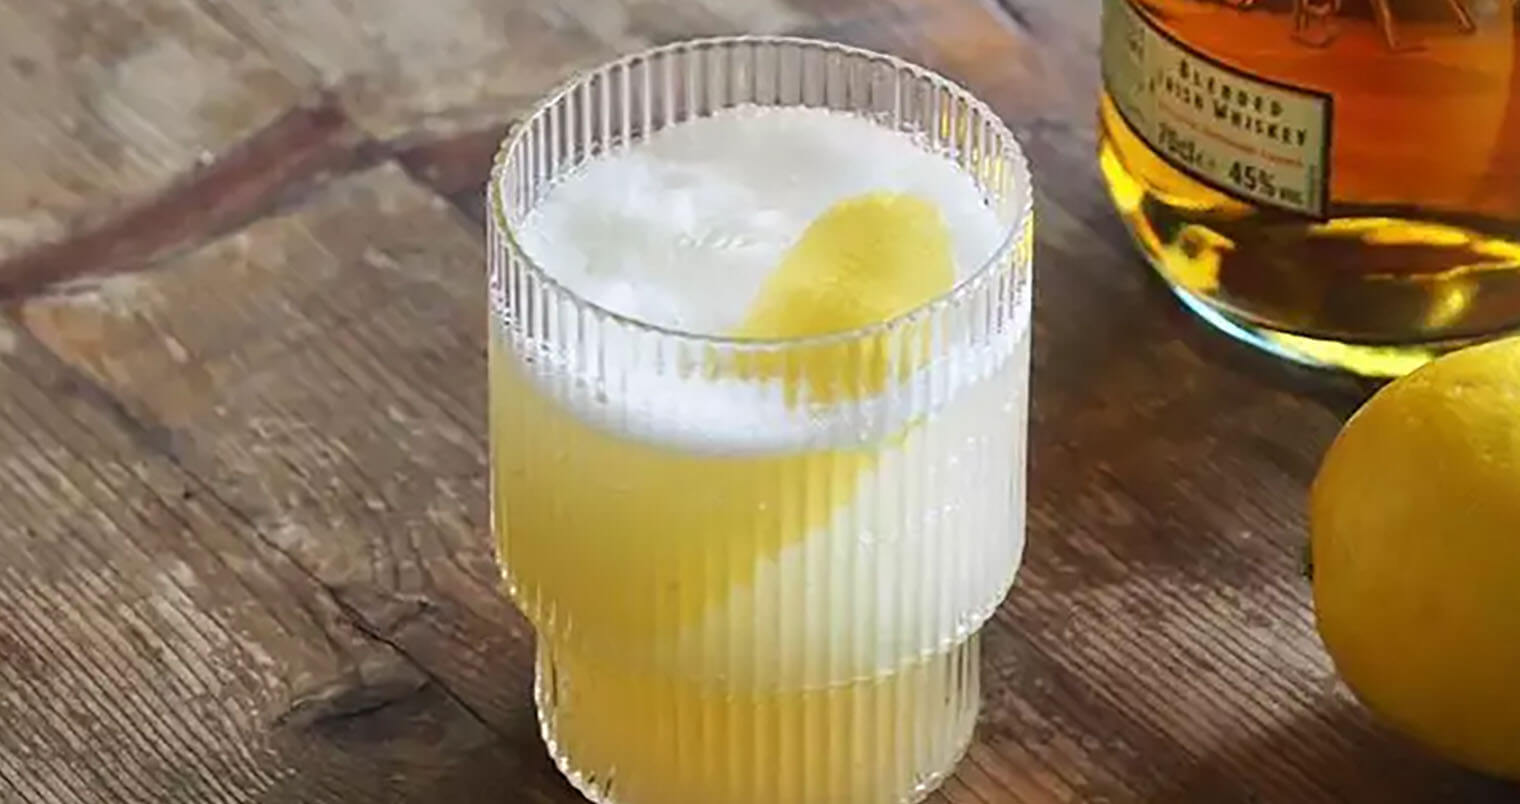 Roe & Co Sour , featured image